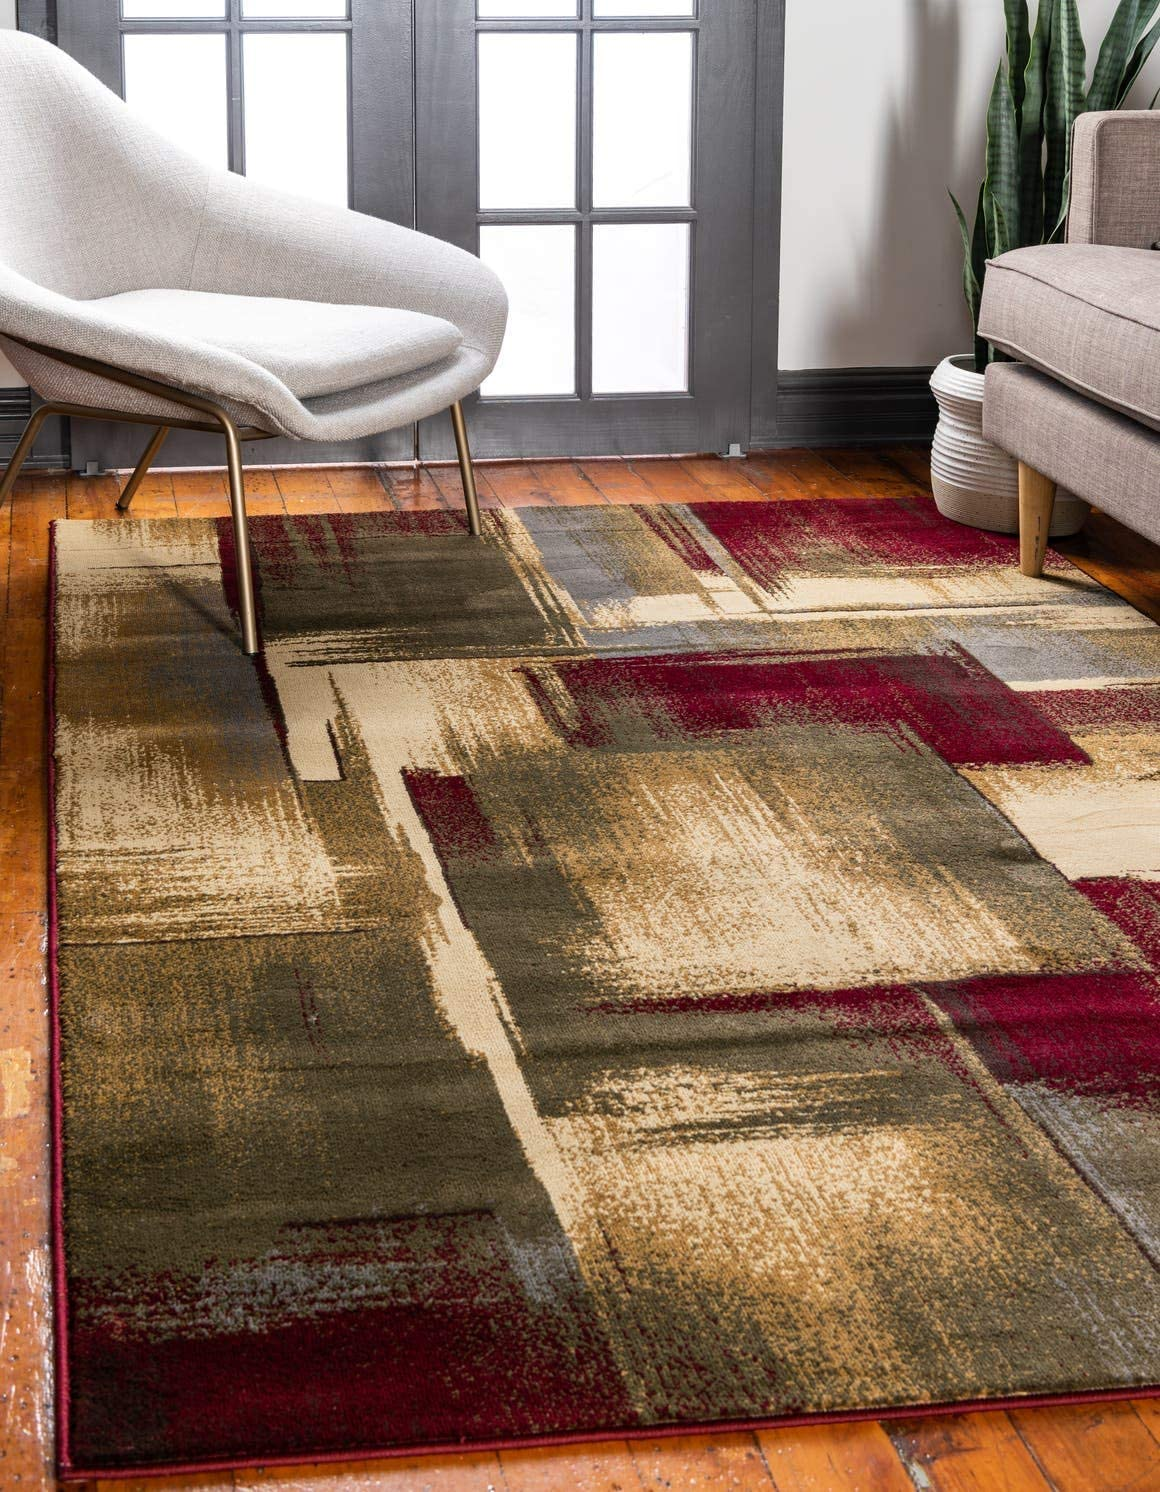 Unique Loom Barista Collection Modern Abstract Gradient Multi Area Rug 4 0 x 6 0